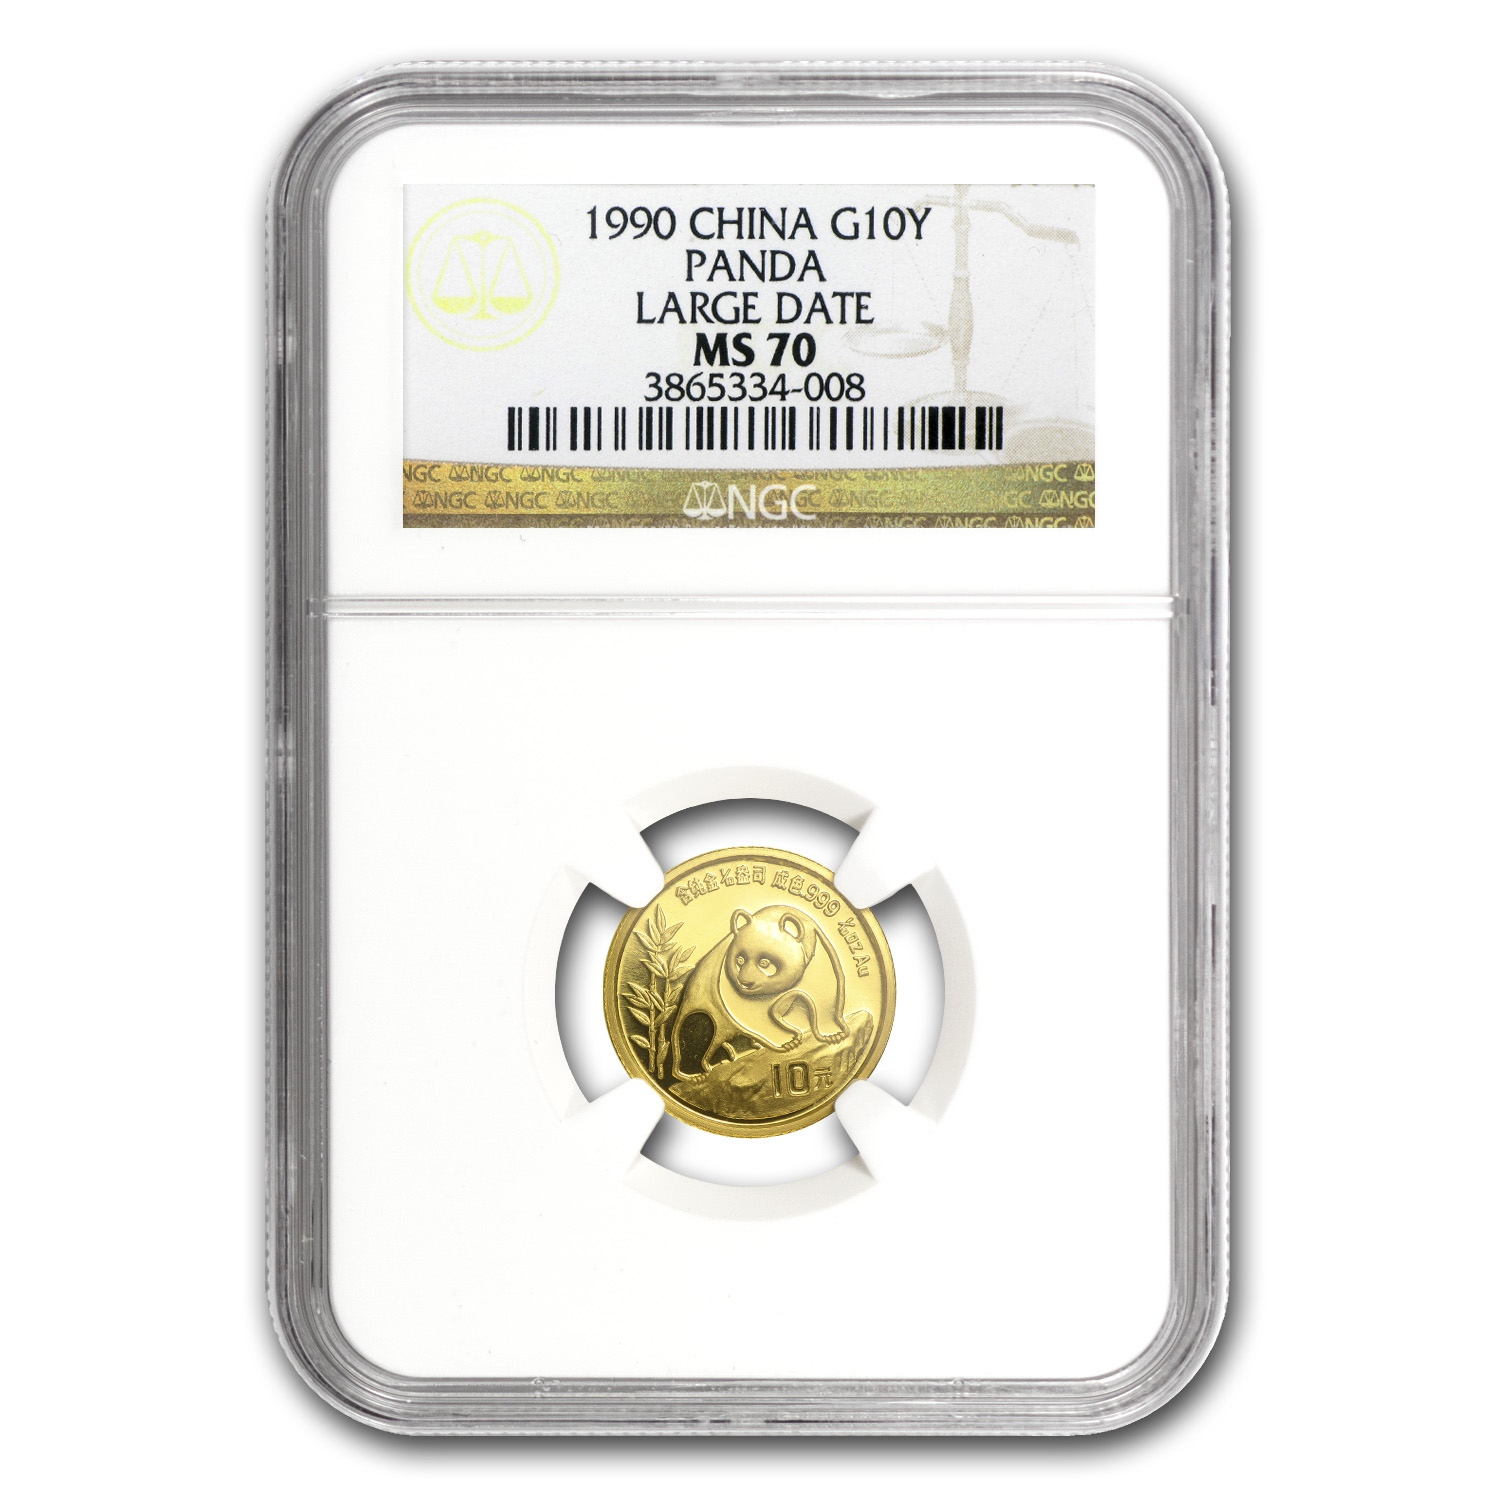 1990 (1/10 oz) Gold Chinese Panda Large Date - MS-70 NGC